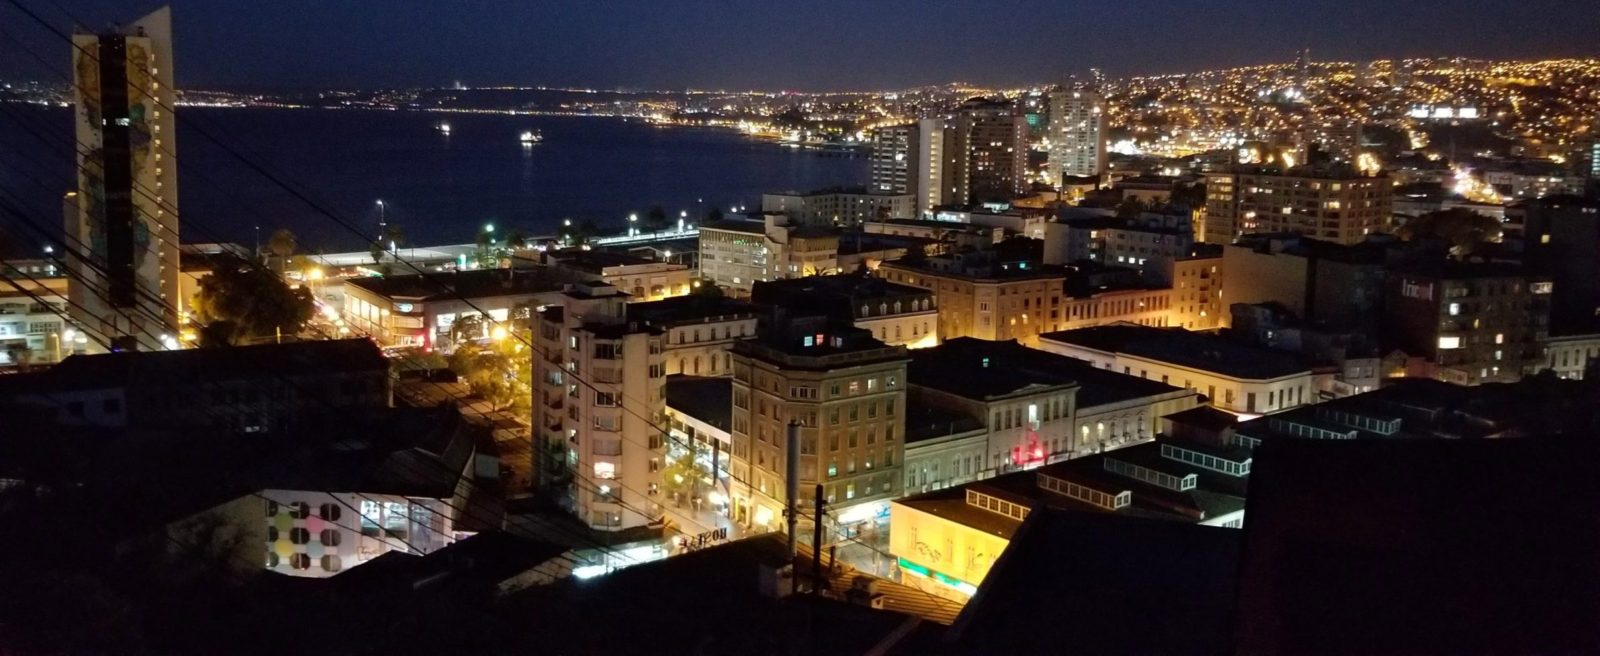 Valparaiso is most alive at night. Check out this beautiful skyline!